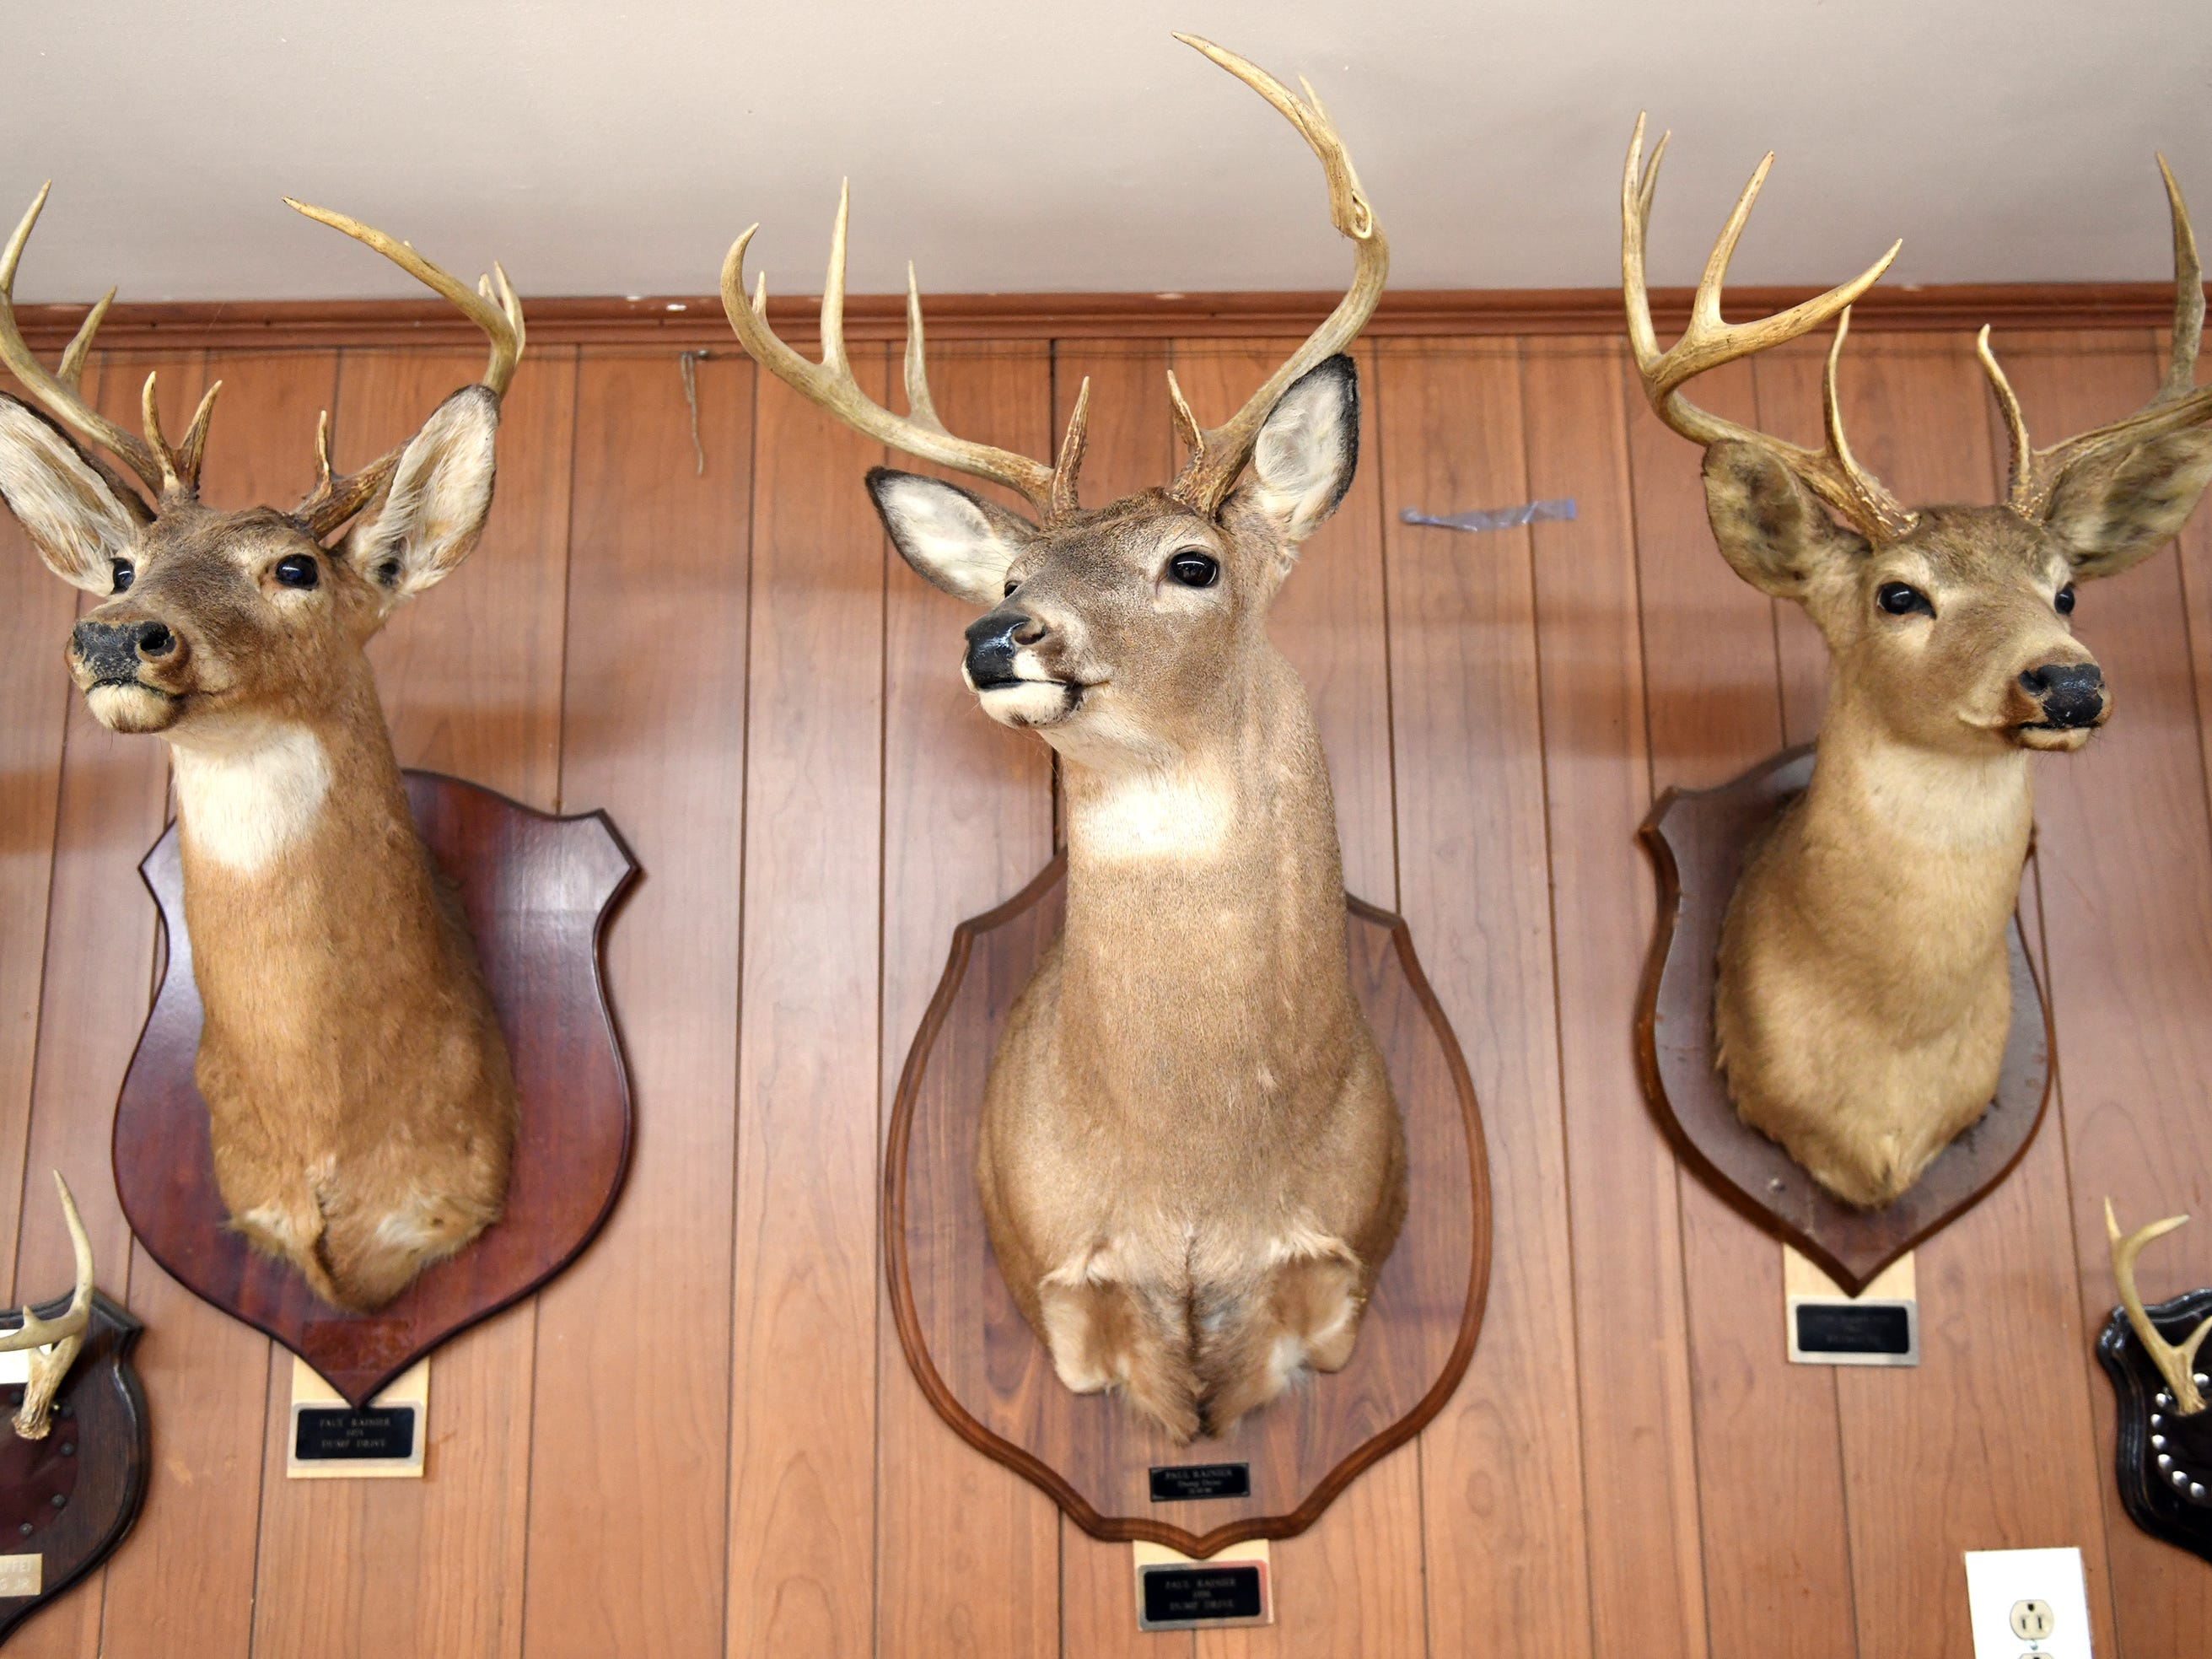 Deer mounts adorn the walls at the Inskip Antler Hunting Club in Winslow Township on Saturday, Feb. 16, 2019. The club hosted The First Annual Family Squirrel Classic while activists protested from across the street.